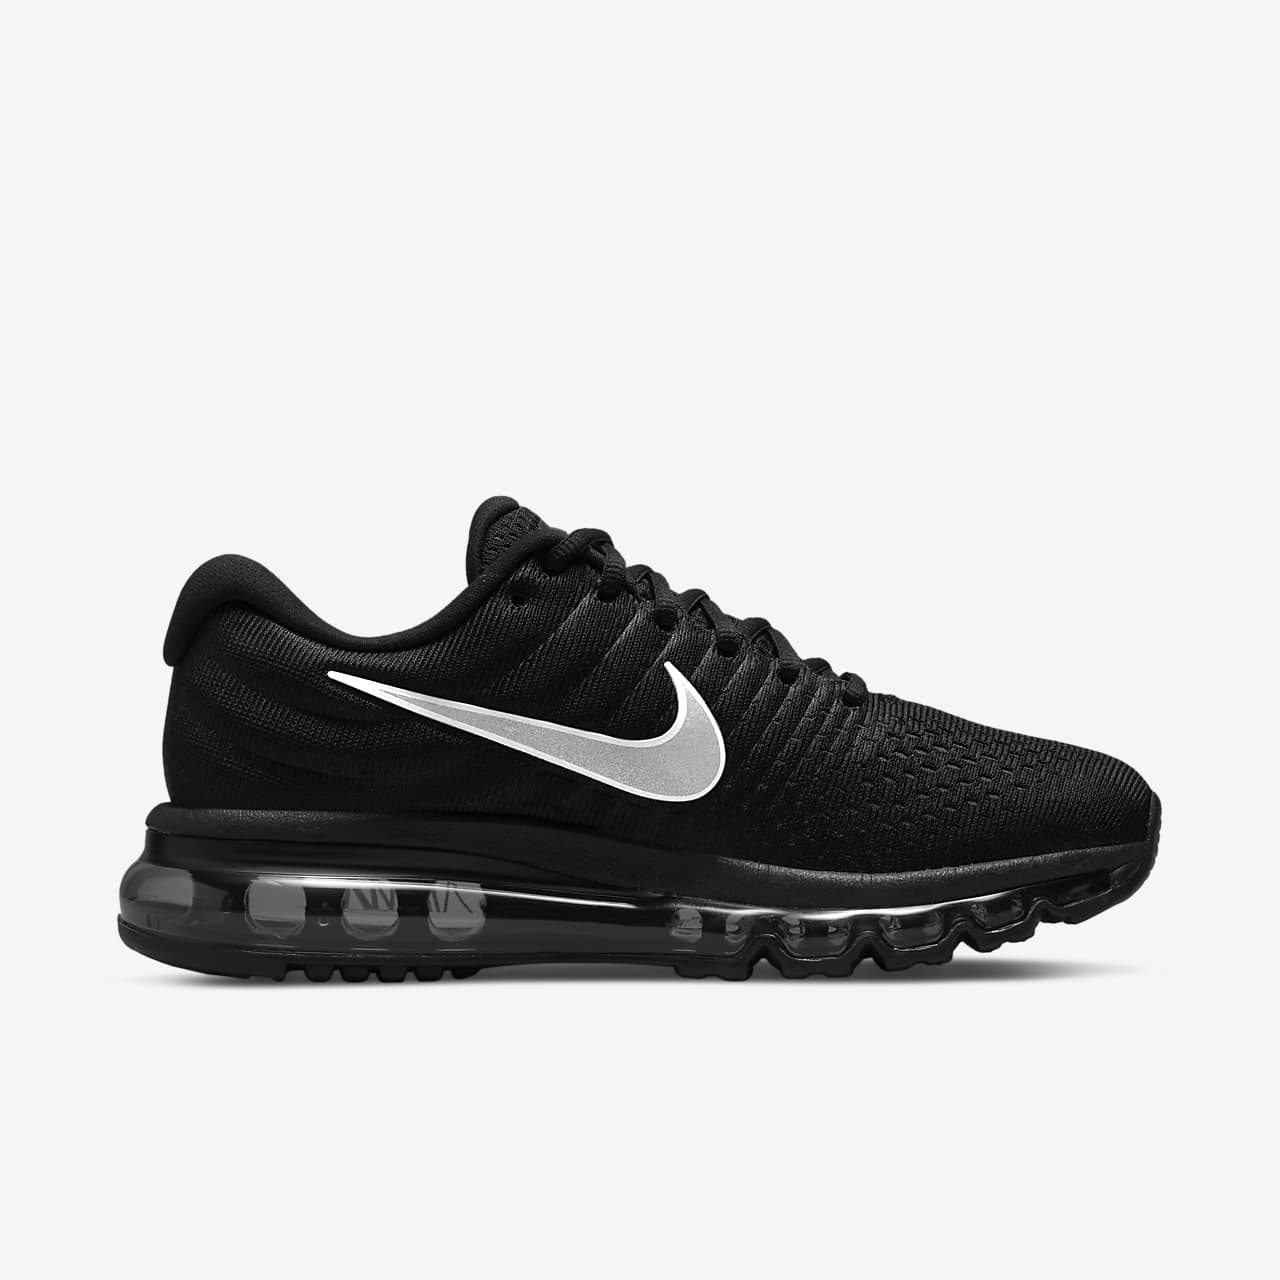 official photos 5b23f de1d6 wholesale 2015 nike air max tailwind 7 herre sko blå sort grønasics aaron  88e51 3061a  where to buy nike air max 2017 sko til kvinder 68cc7 16c3c